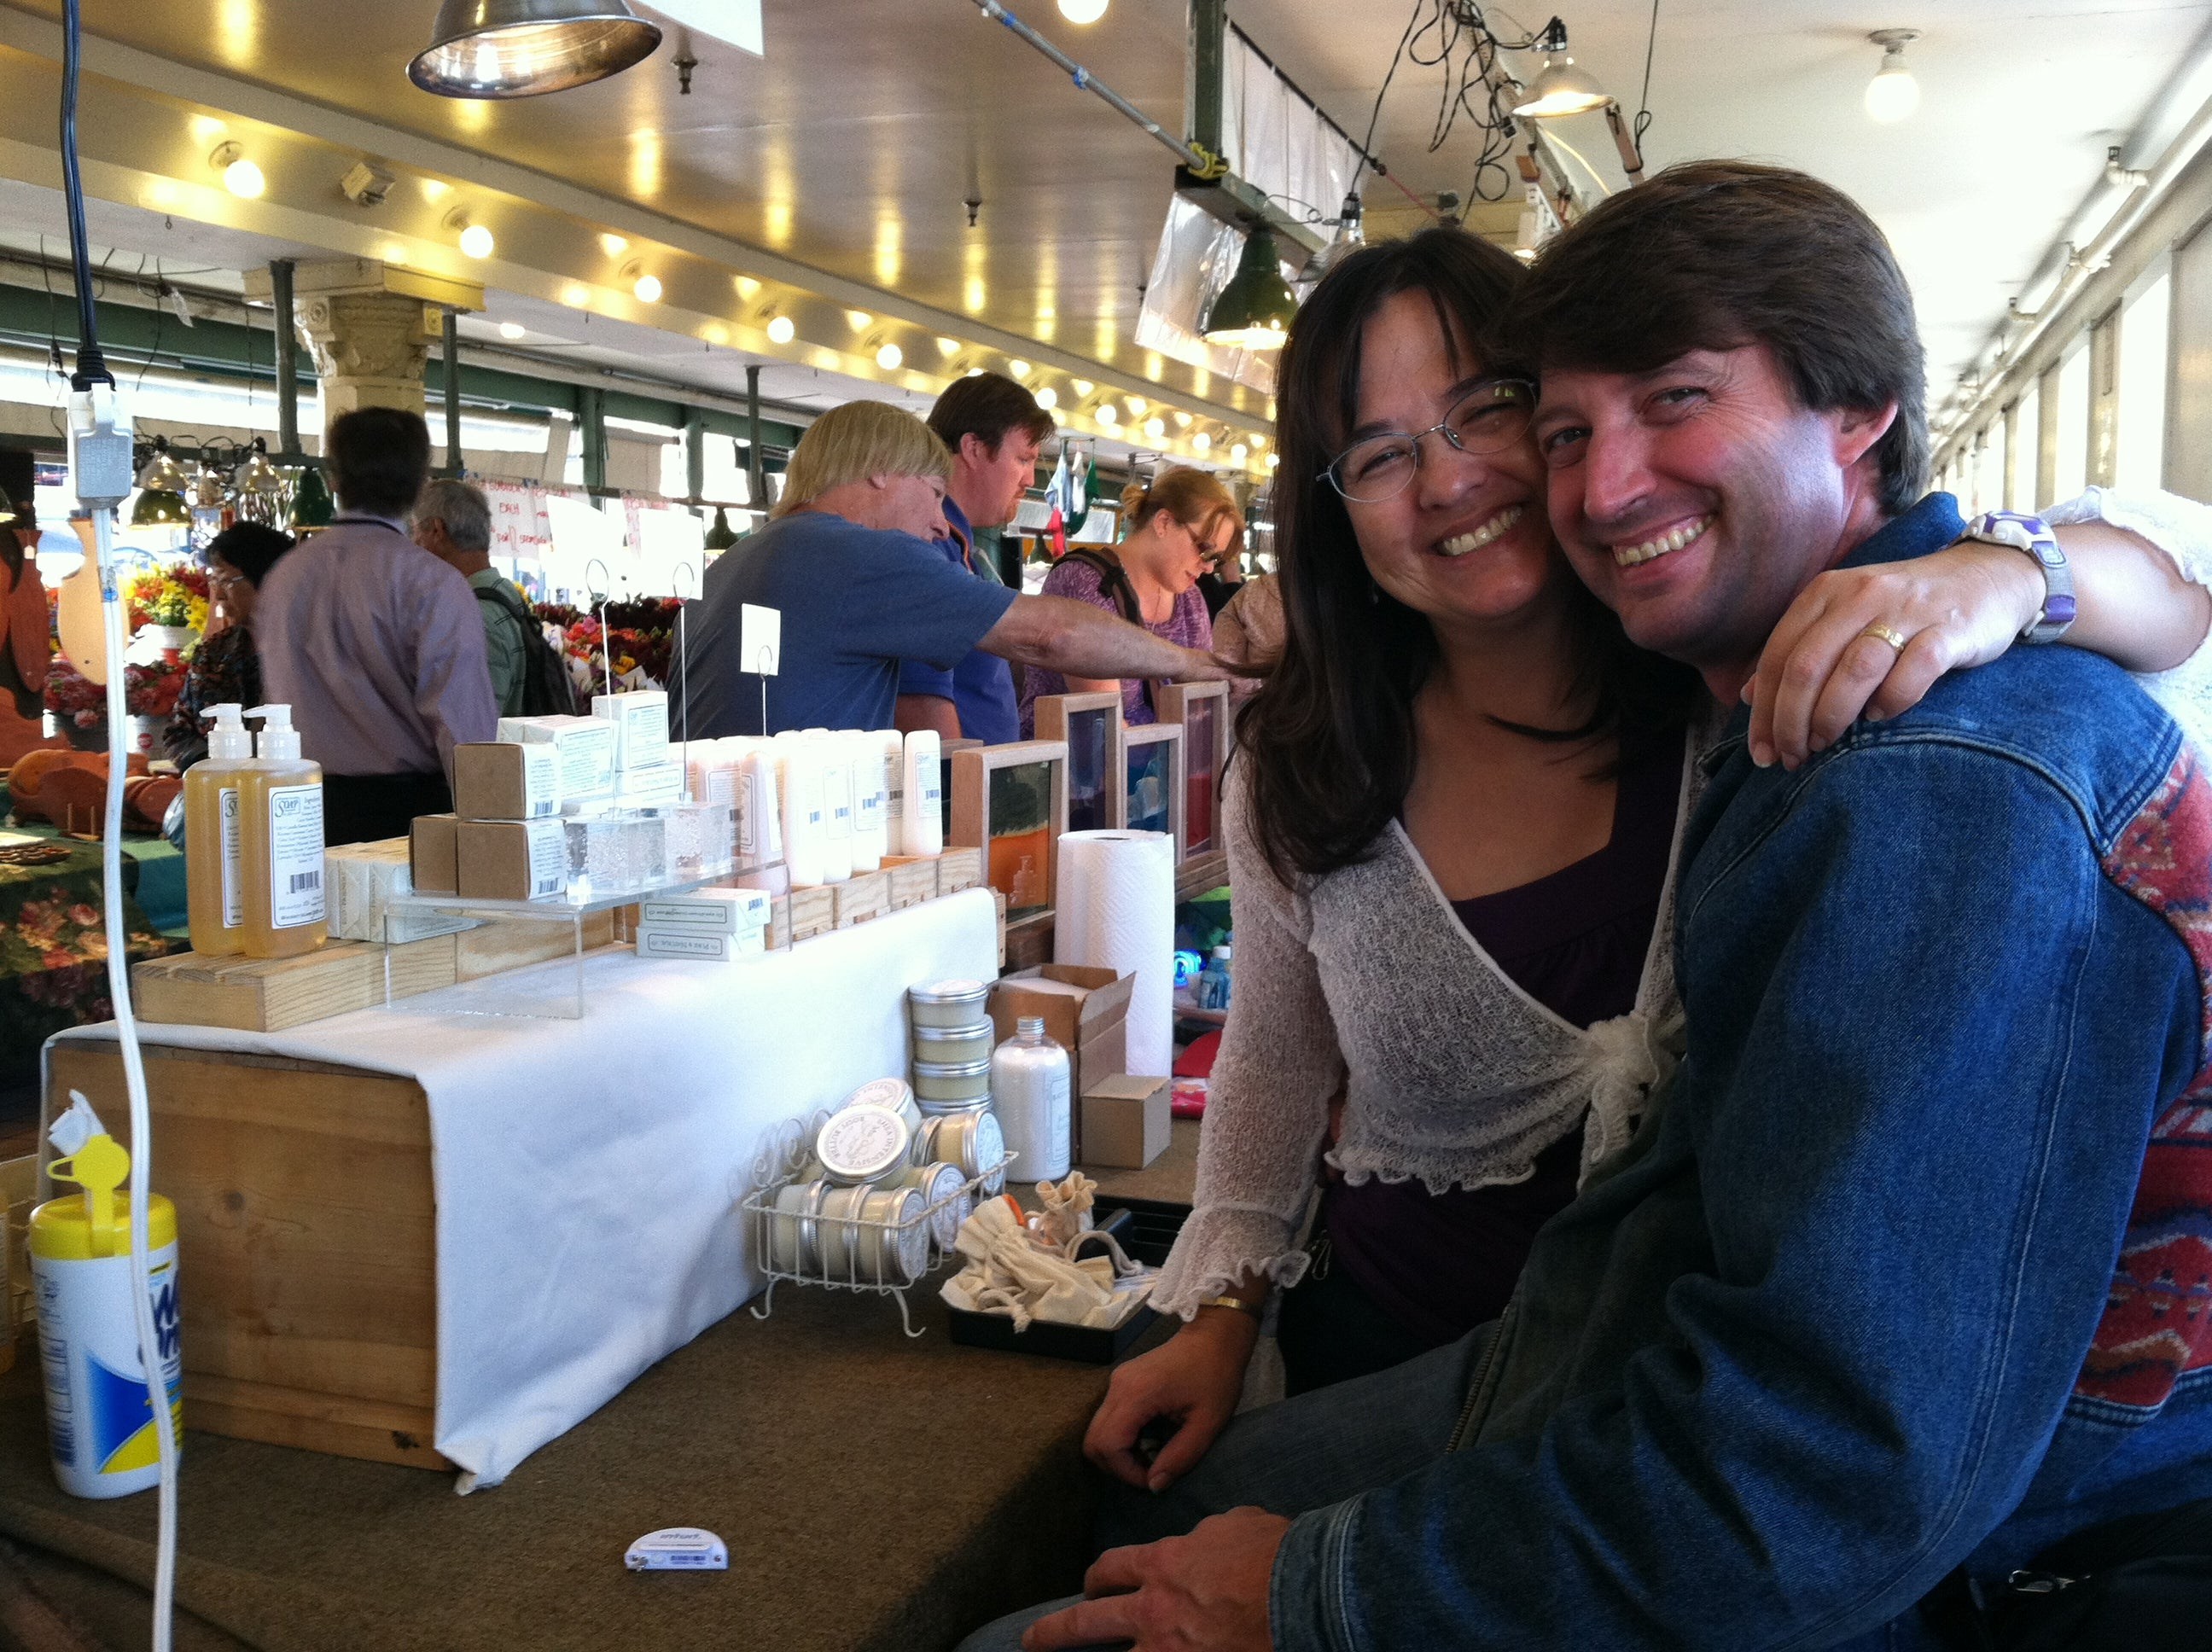 David working and Gayle visiting together at Pike Place Market